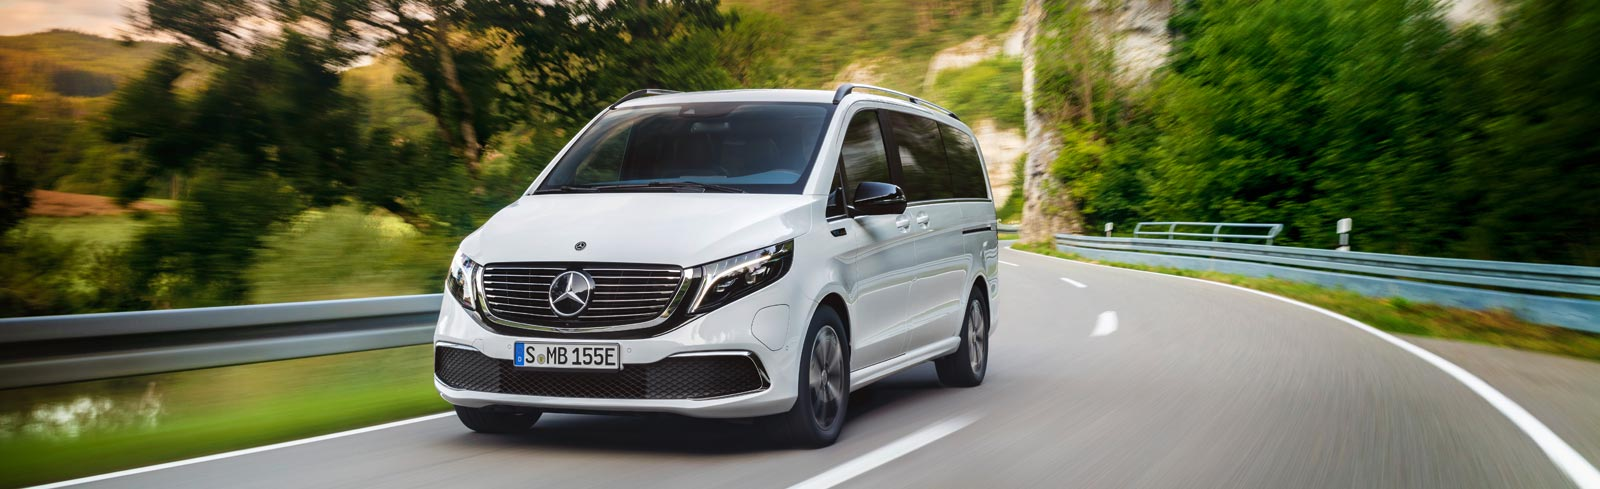 Mercedes-Benz EQV - the world's first all-electric MPV - is official